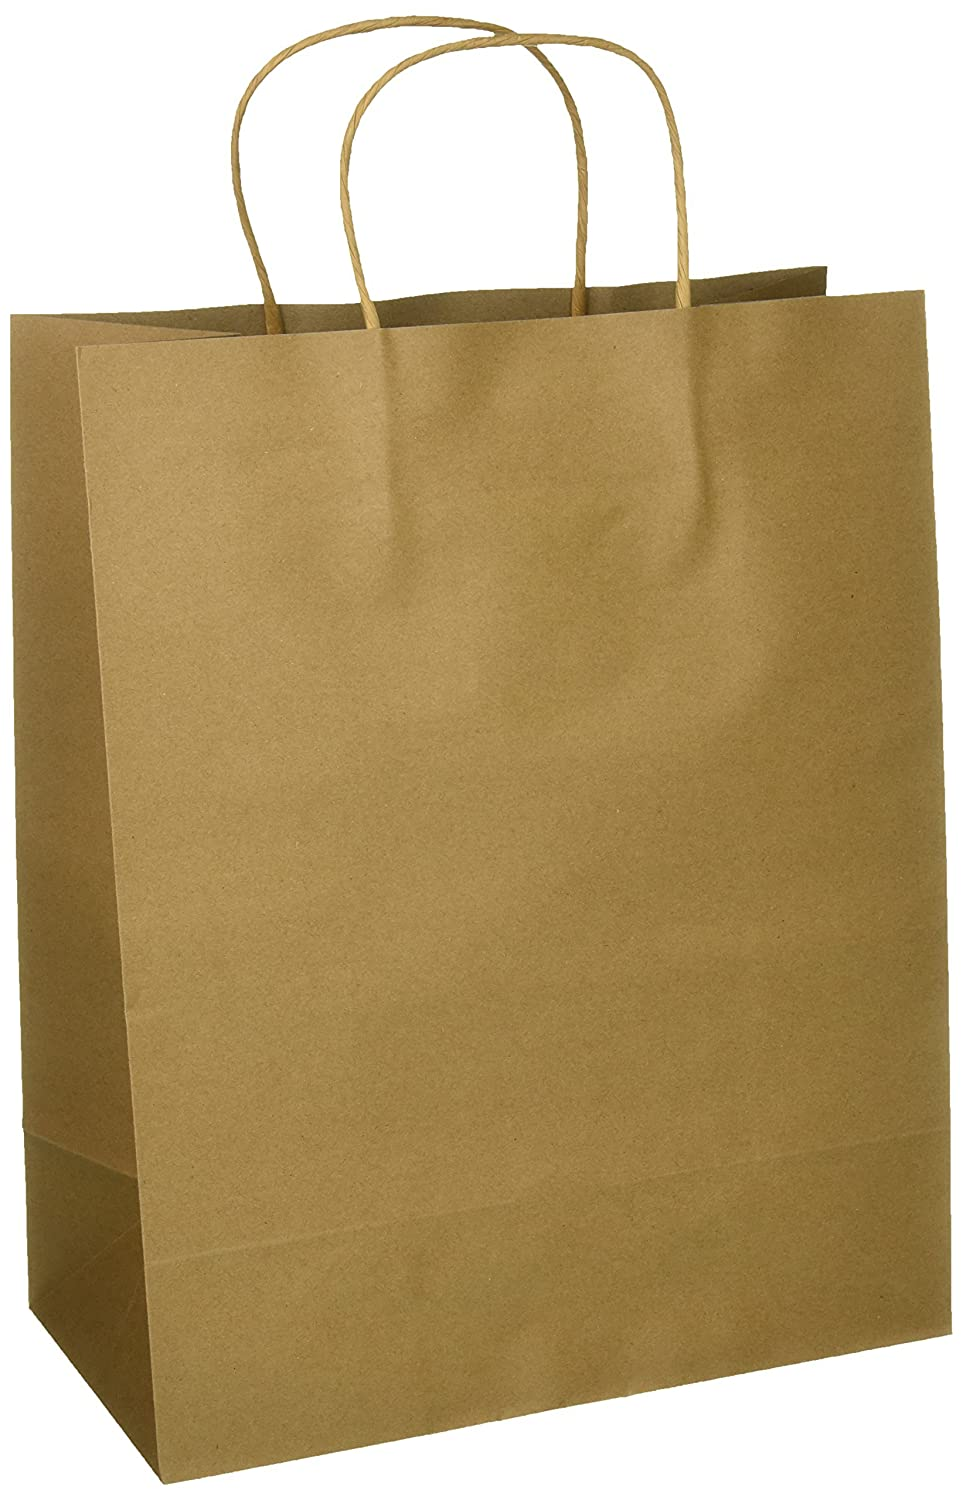 Craft Gift Bags ~ Brown Paper 1 dozen - 10' x 5' x 13' Fun Express BPBSM12